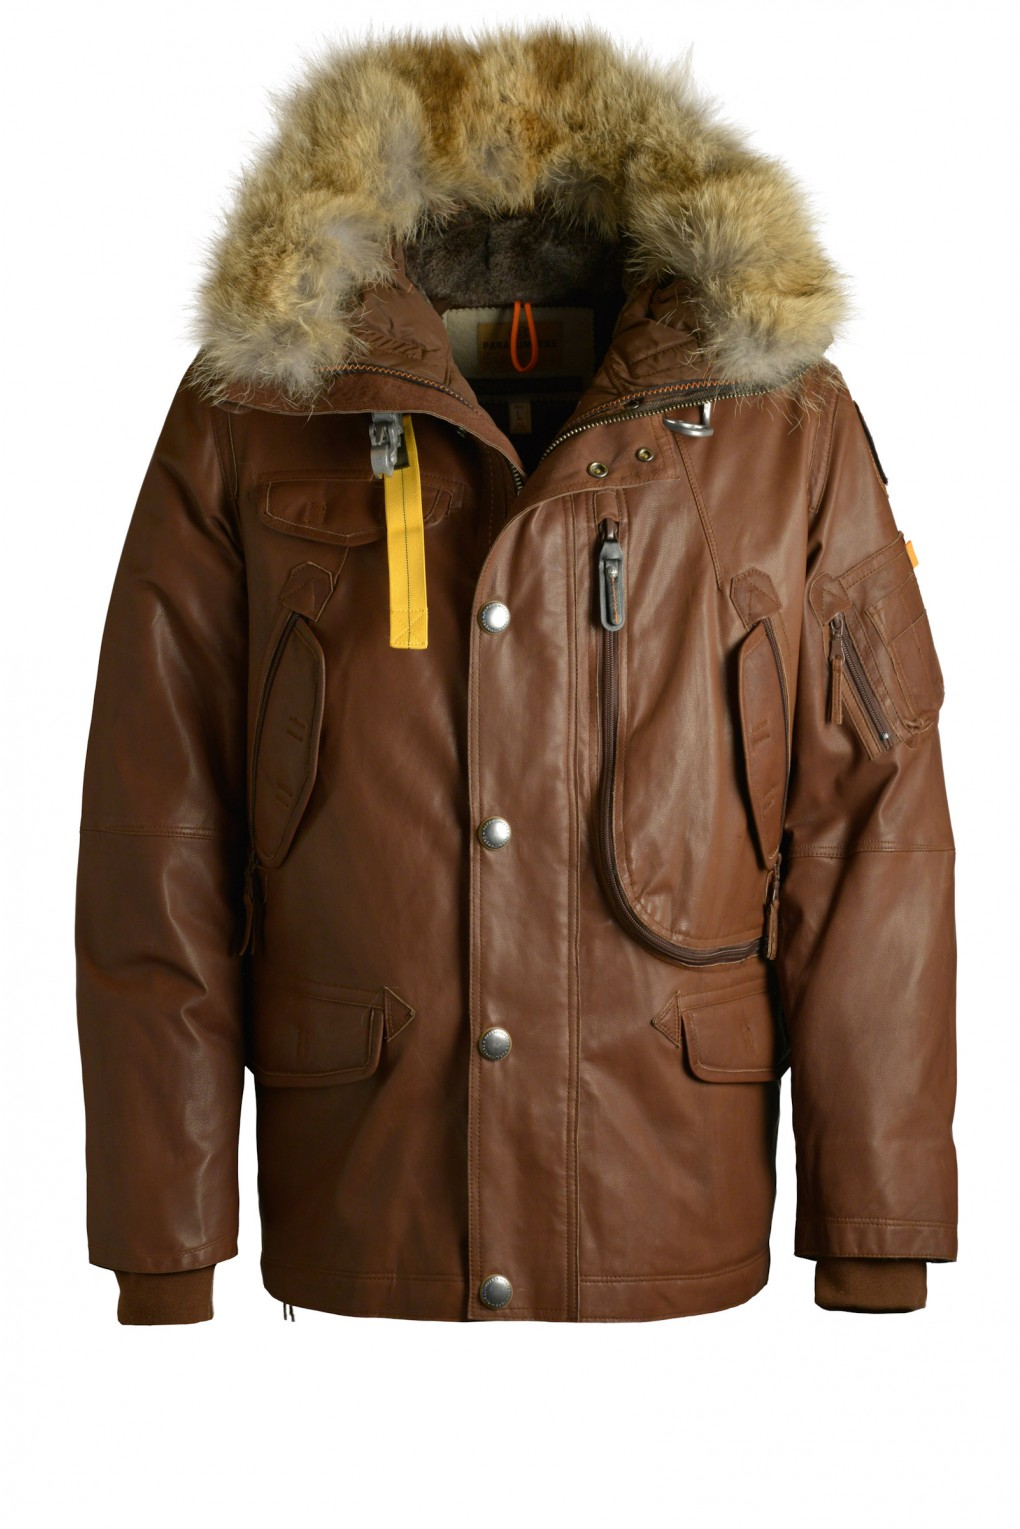 parajumpers RIGHT HAND LEATHER man outerwear Brown